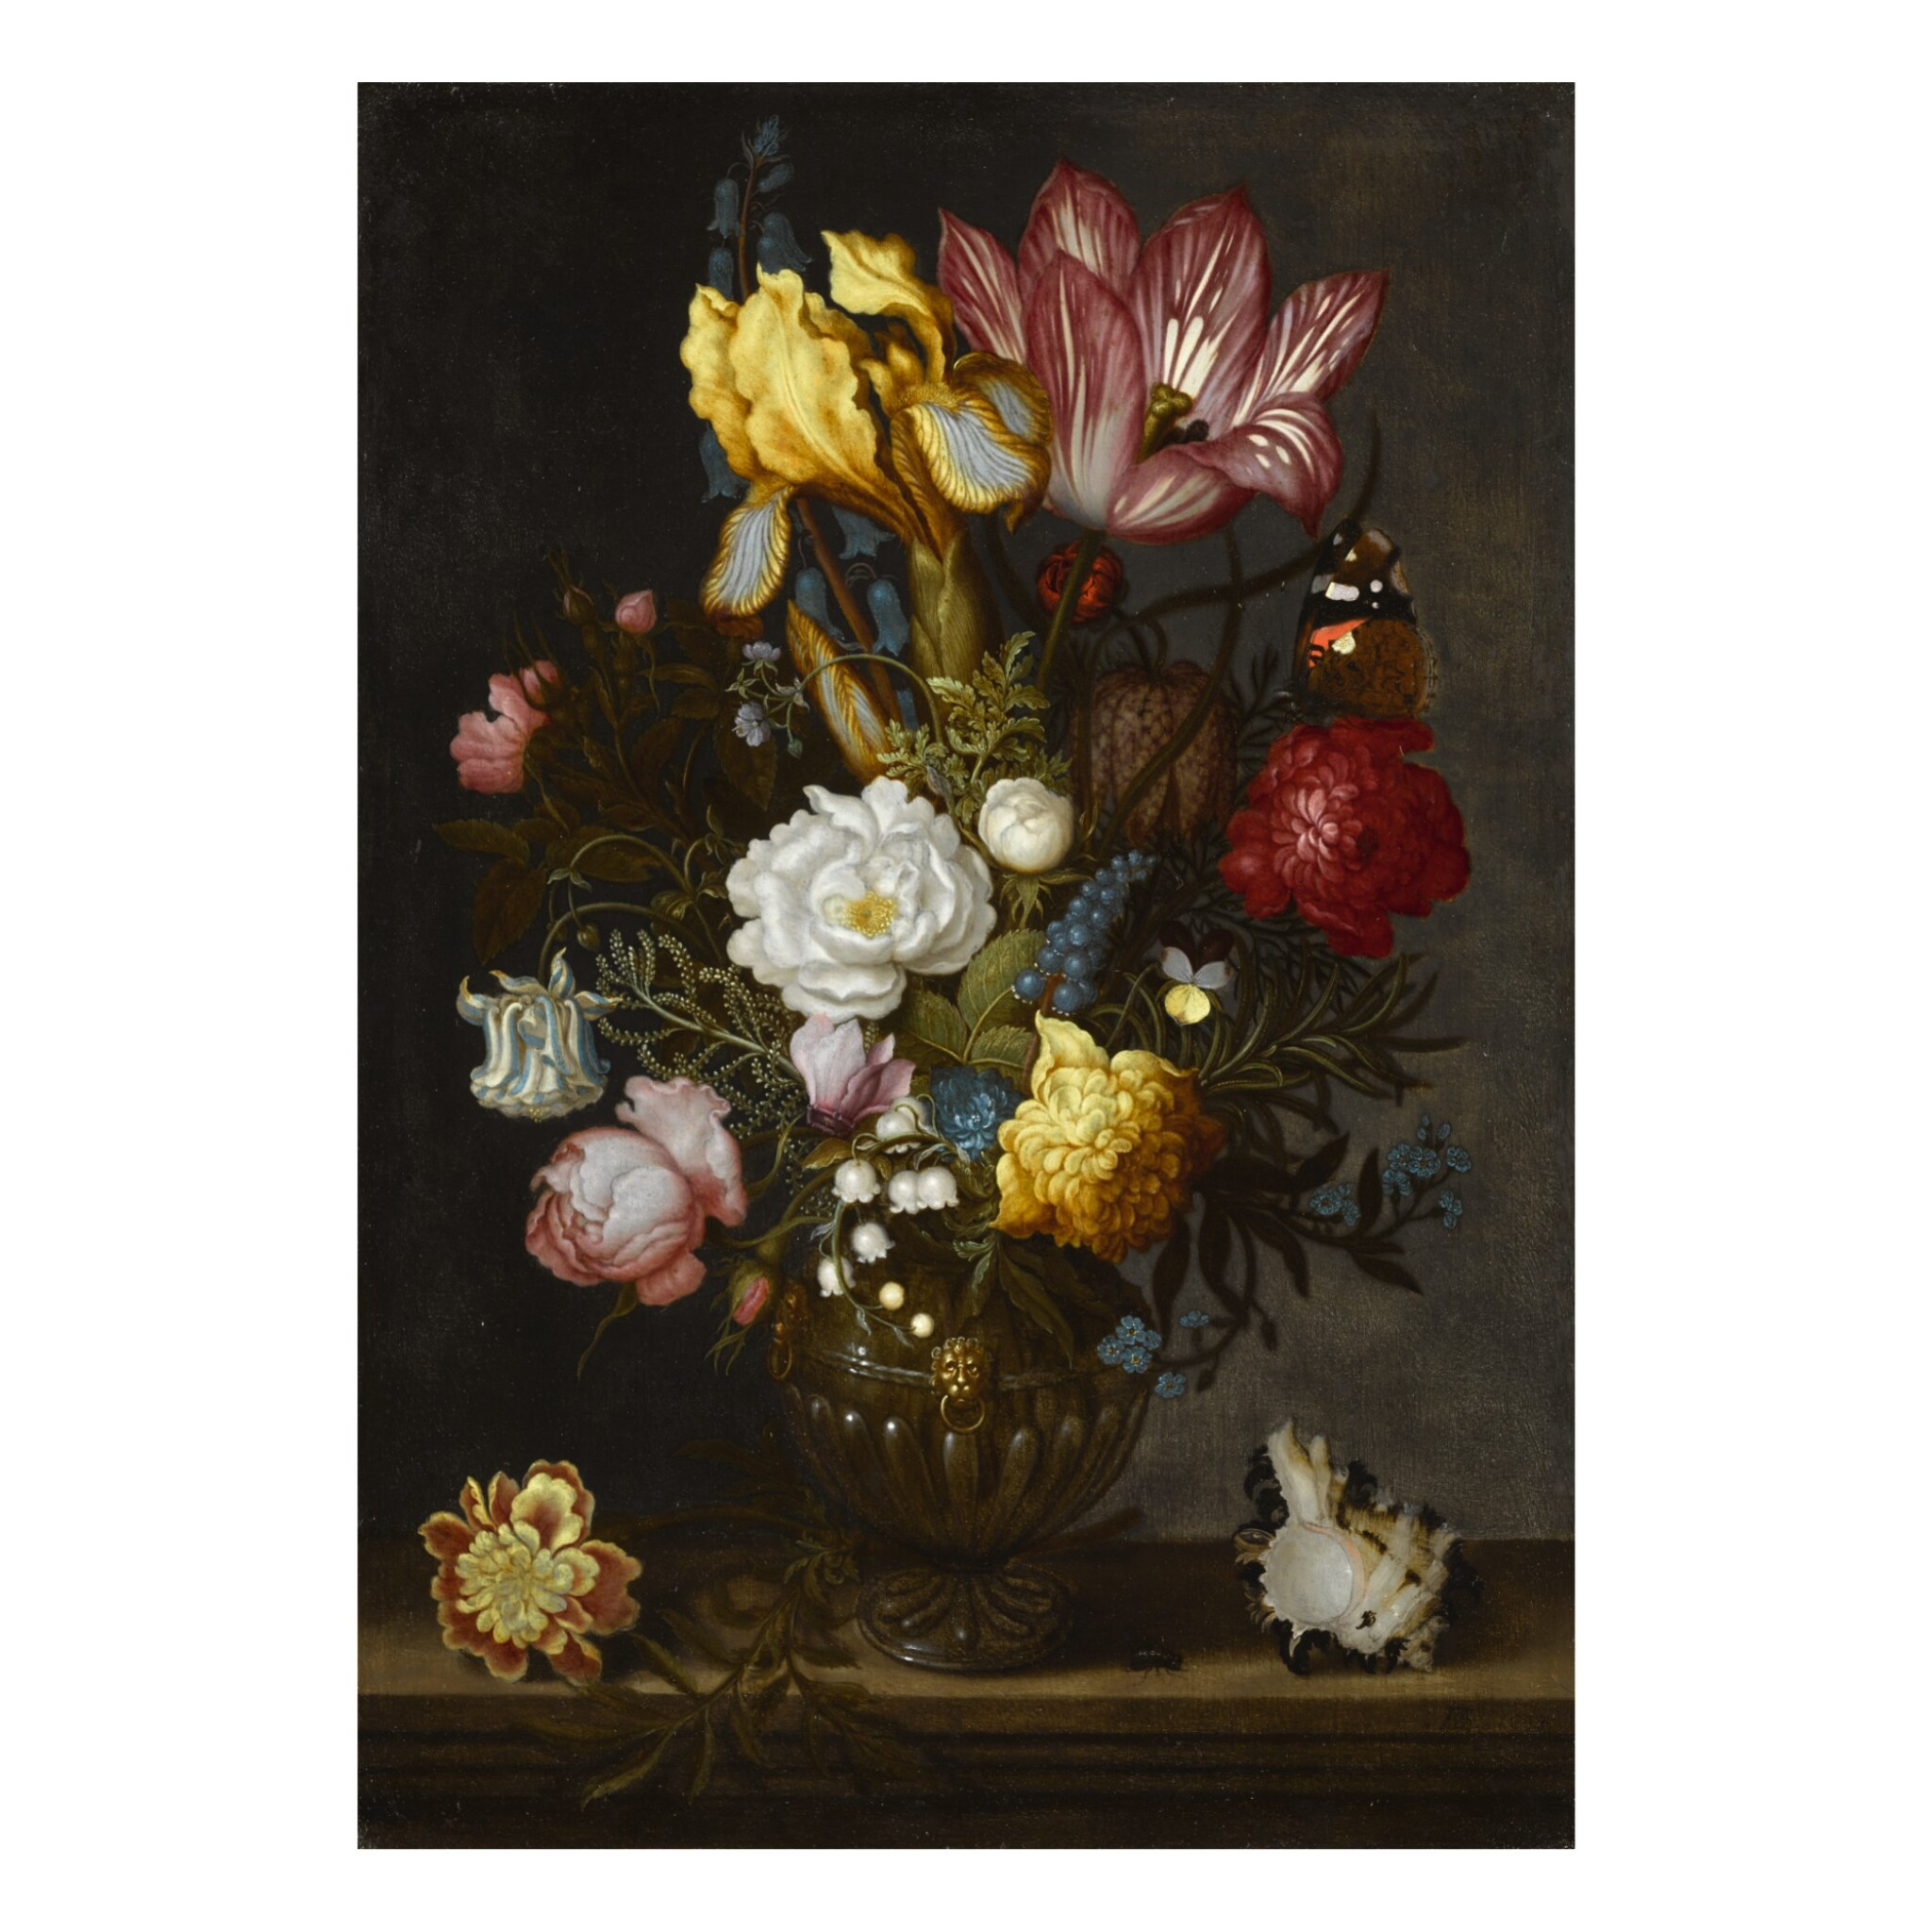 View full screen - View 1 of Lot 38. A still life of white and red roses, a tulip, anemones, a hyacinth, a pansy, lily-of-the-valley, and other flowers in an ornamented glass vase on a hard-stone ledge, with a shell, a bluebottle and a Red Admiral butterfly.